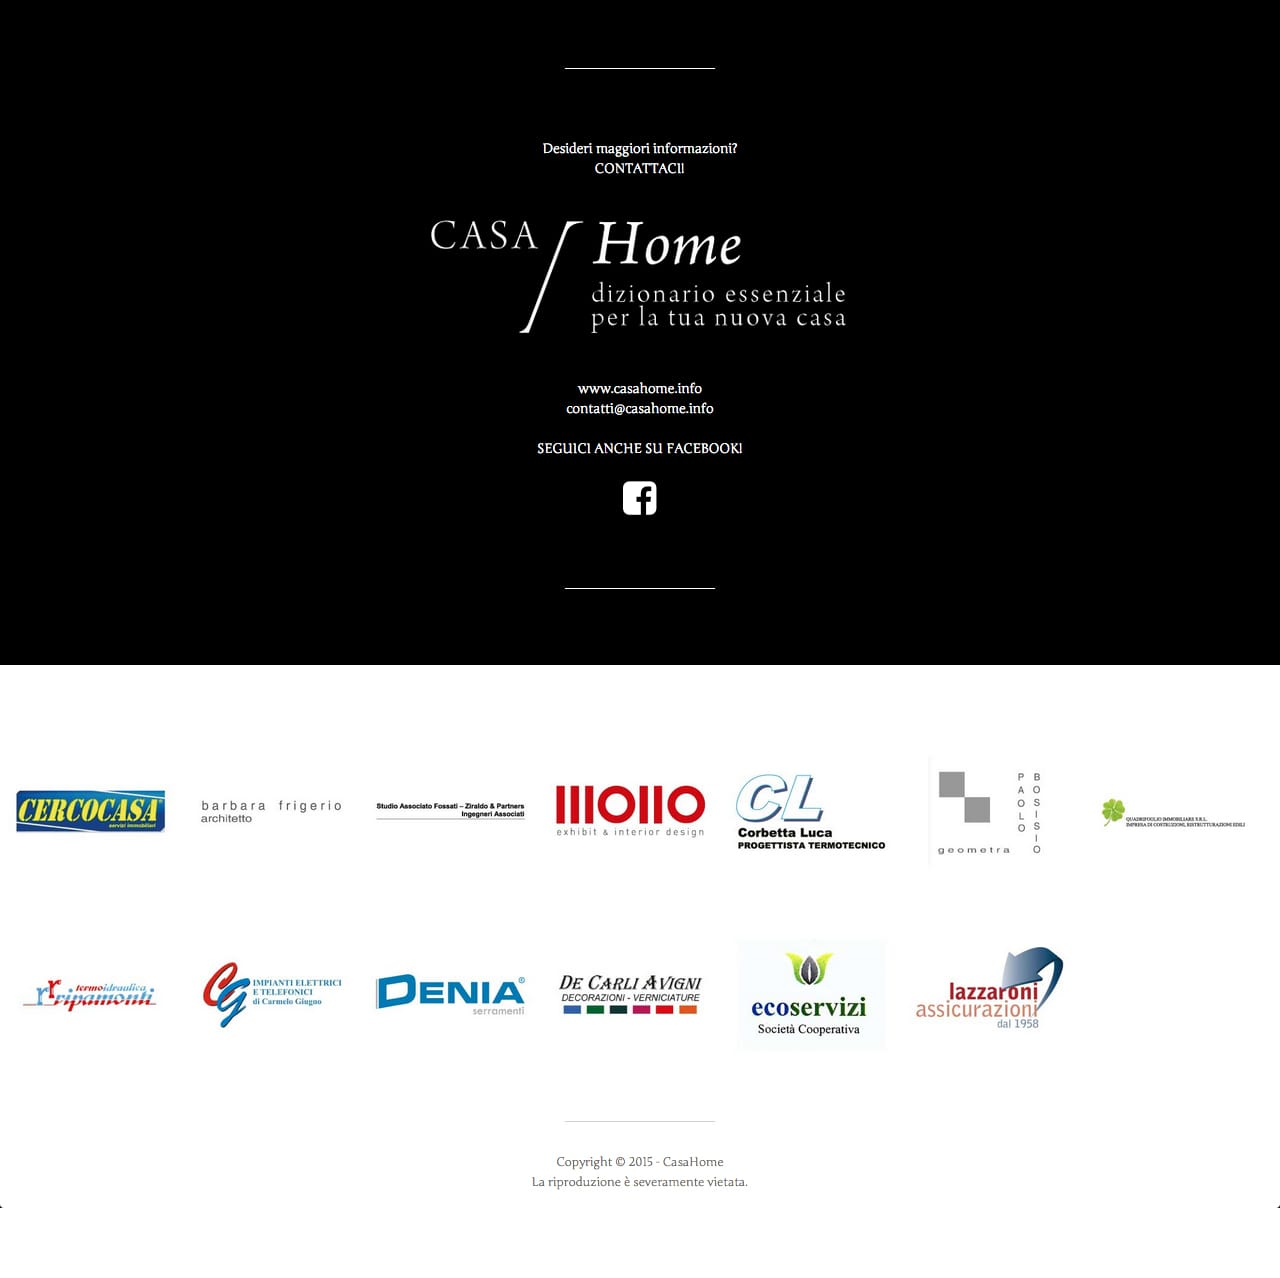 casa-home-interior-design-services-business-web-design-portfolio-casahome-footer